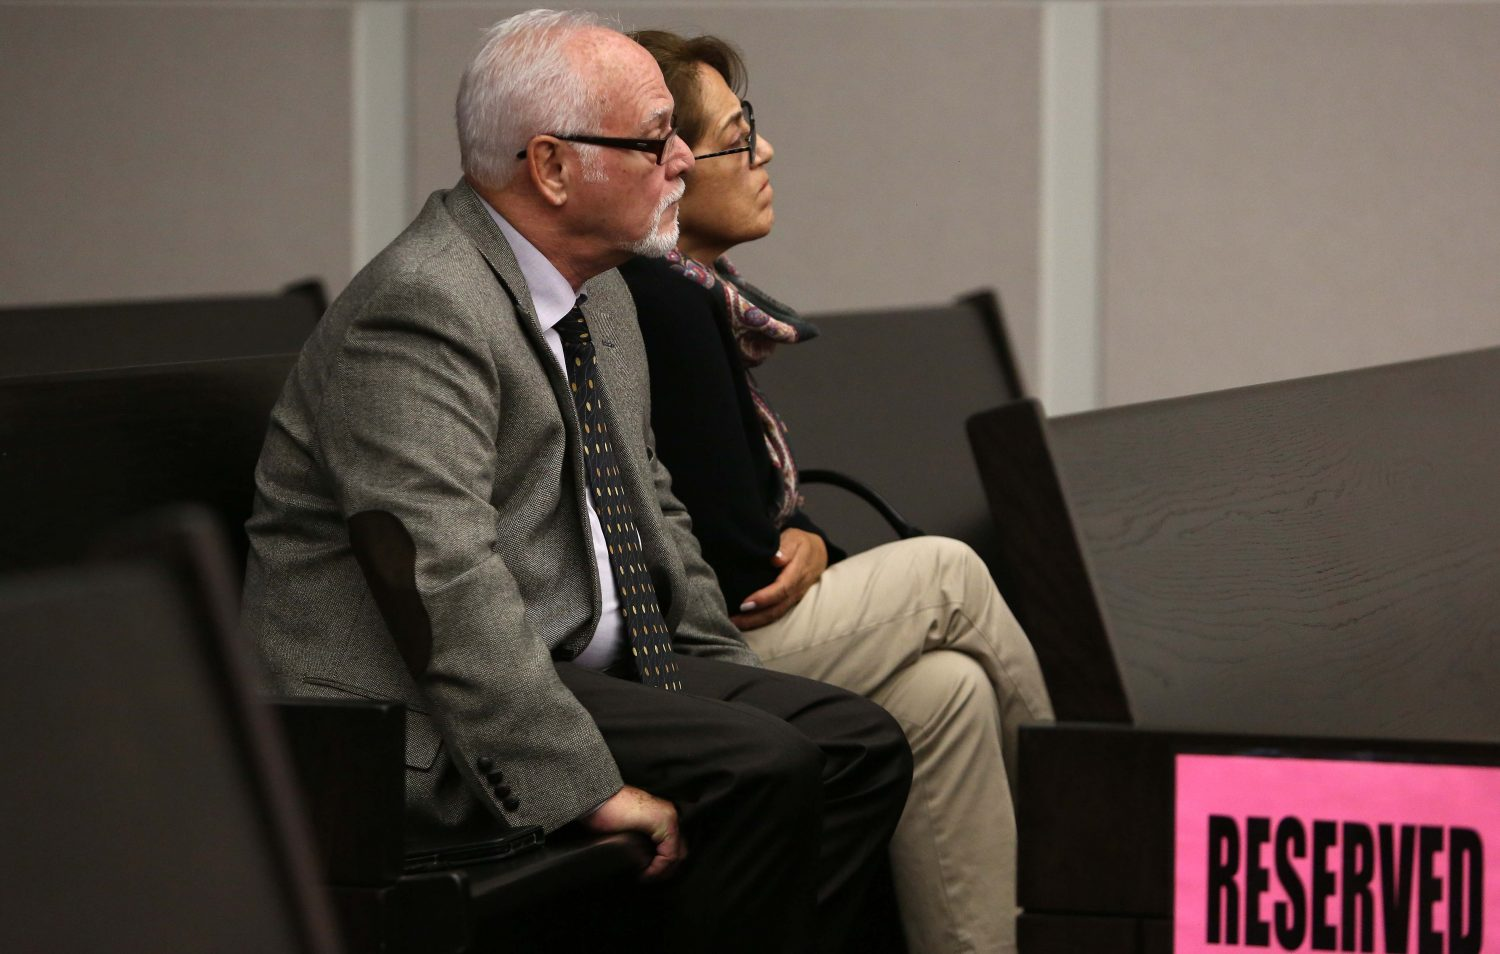 The parents of Pedro Bravo look at evidence photos at their son's murder trial in courtroom 1B of the Alachua County Criminal Justice Center Wednesday, August 6, 2014.  Bravo is accused of killing University of Florida student Christian Aguilar.  (Doug Finger/The Gainesville Sun/Pool)